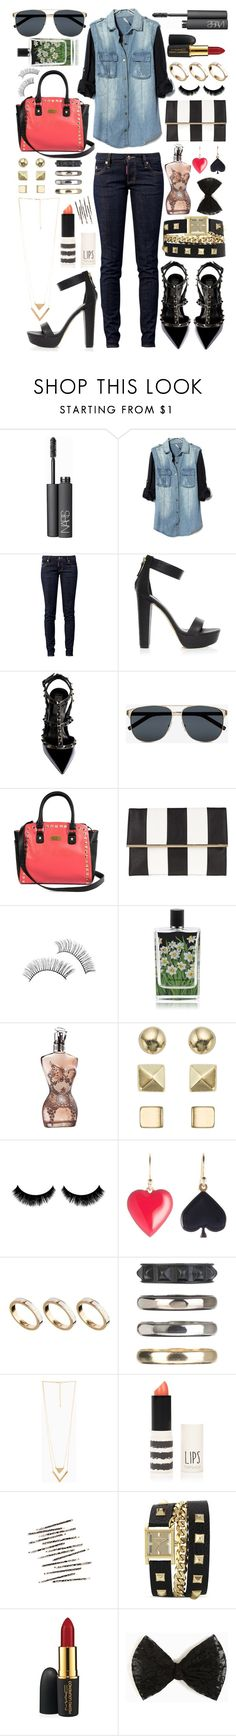 """Untitled #186"" by daneecalifornia ❤ liked on Polyvore featuring NARS Cosmetics, Dsquared2, Valentino, Yves Saint Laurent, Dorothy Perkins, Nest Fragrances, Jean-Paul Gaultier, Accessorize, N2 By Les Nereides and ASOS"